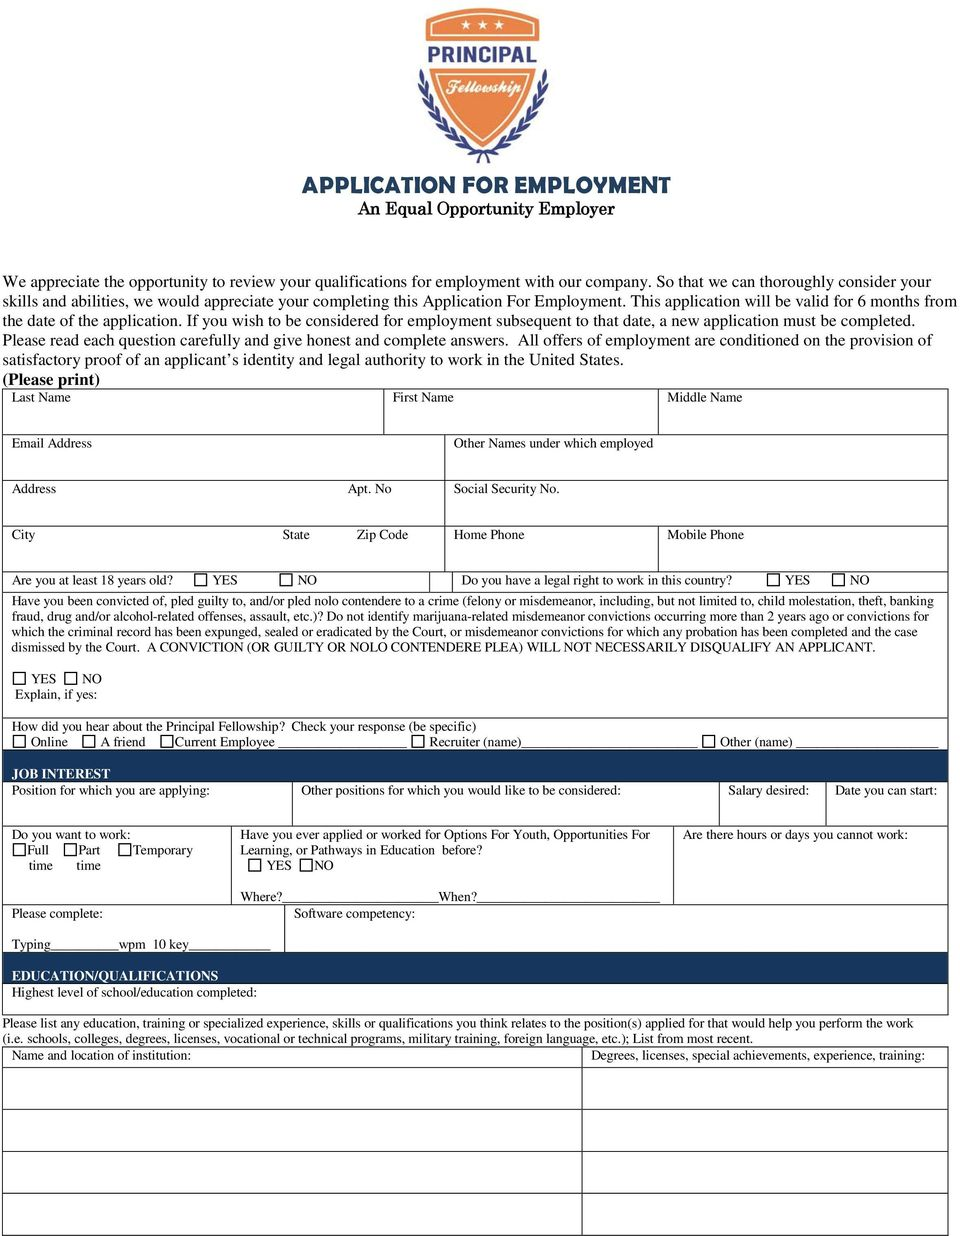 This application will be valid for 6 months from the date of the application. If you wish to be considered for employment subsequent to that date, a new application must be completed.